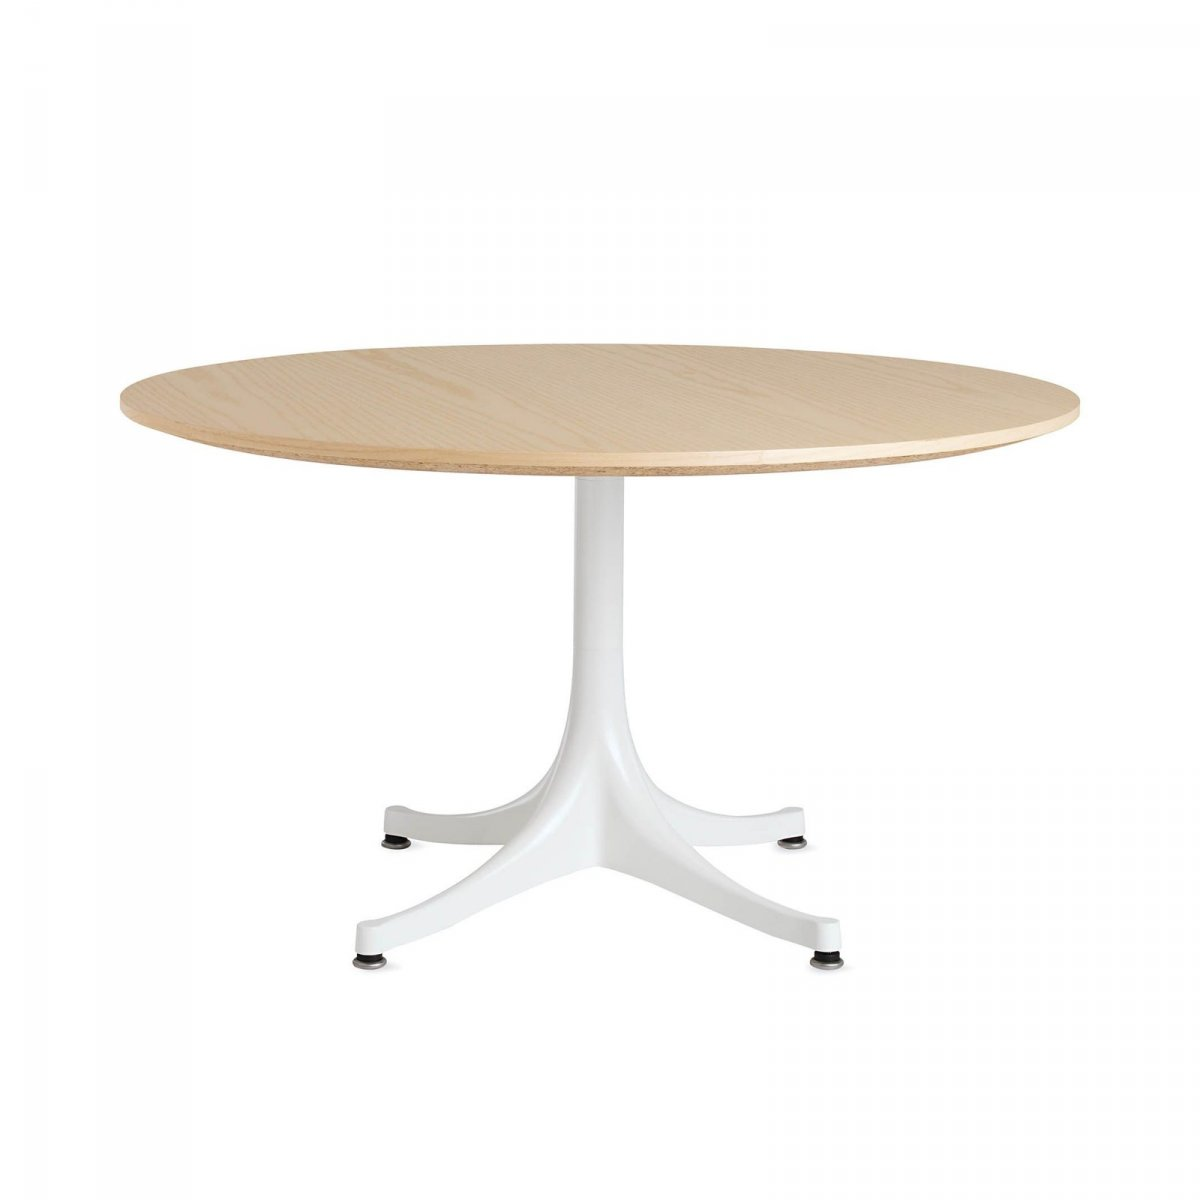 Nelson Pedestal Table 5452, white ash top with white base.